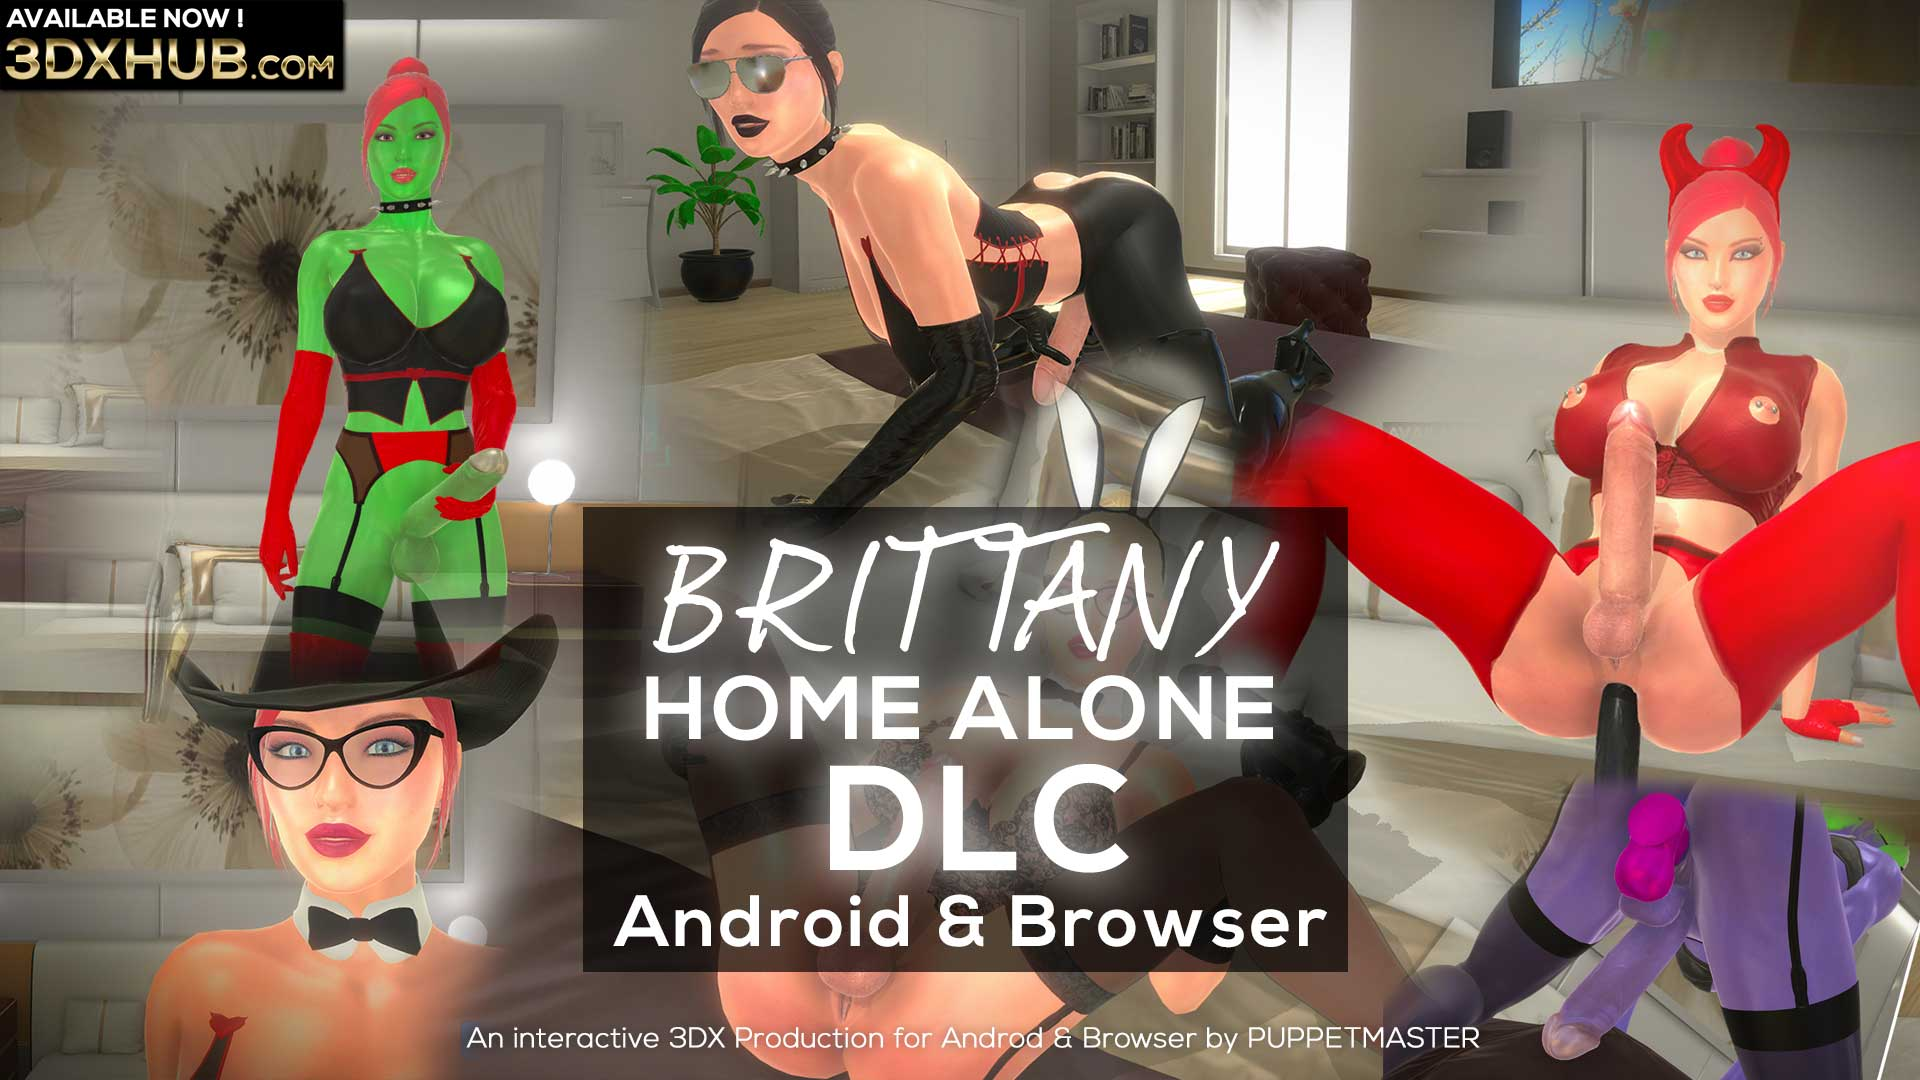 Brittany Home Alone DLC (Android & Browser)